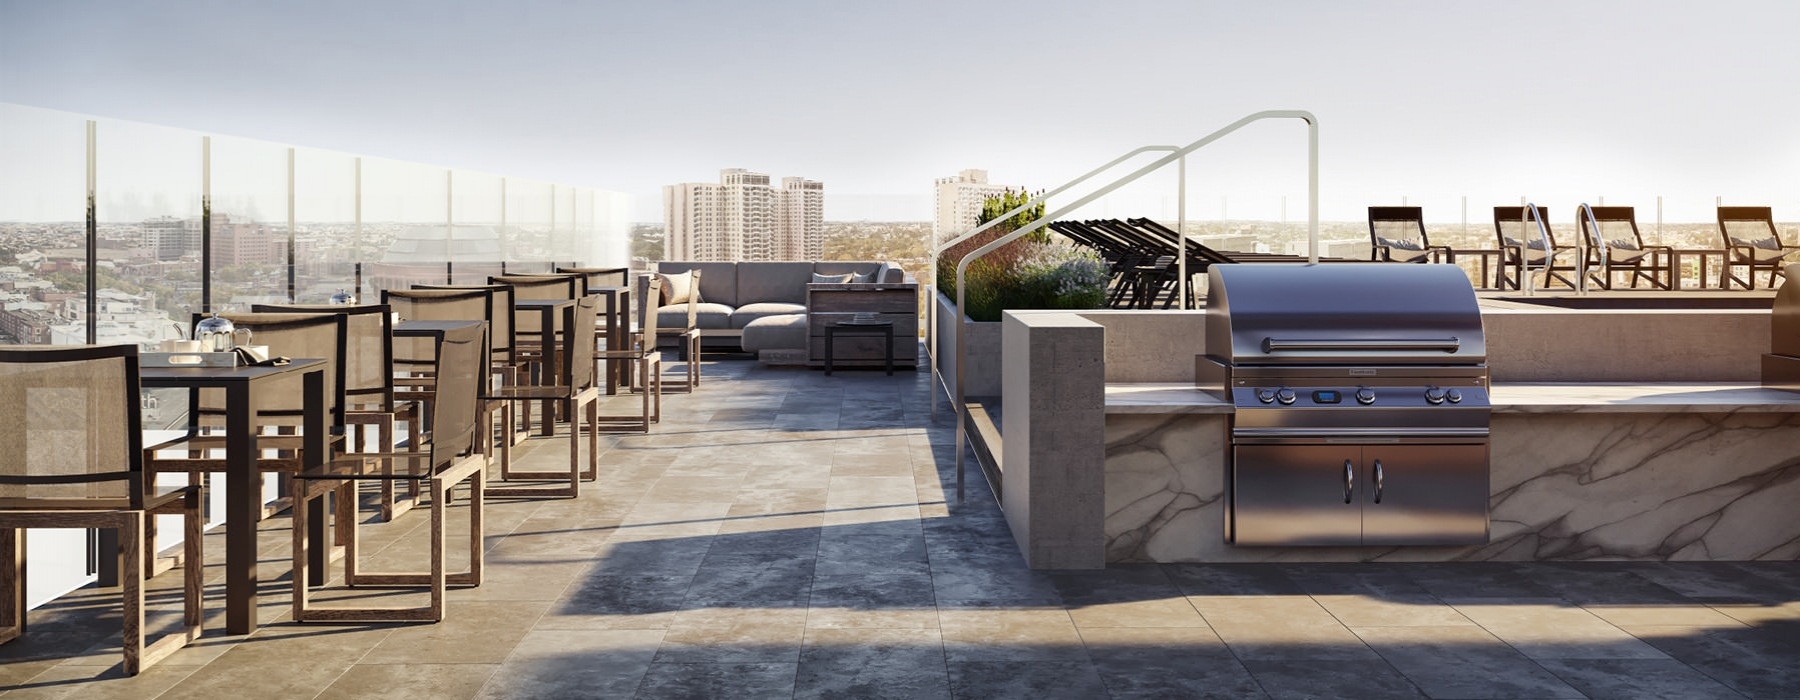 rendering of rooftop grill area